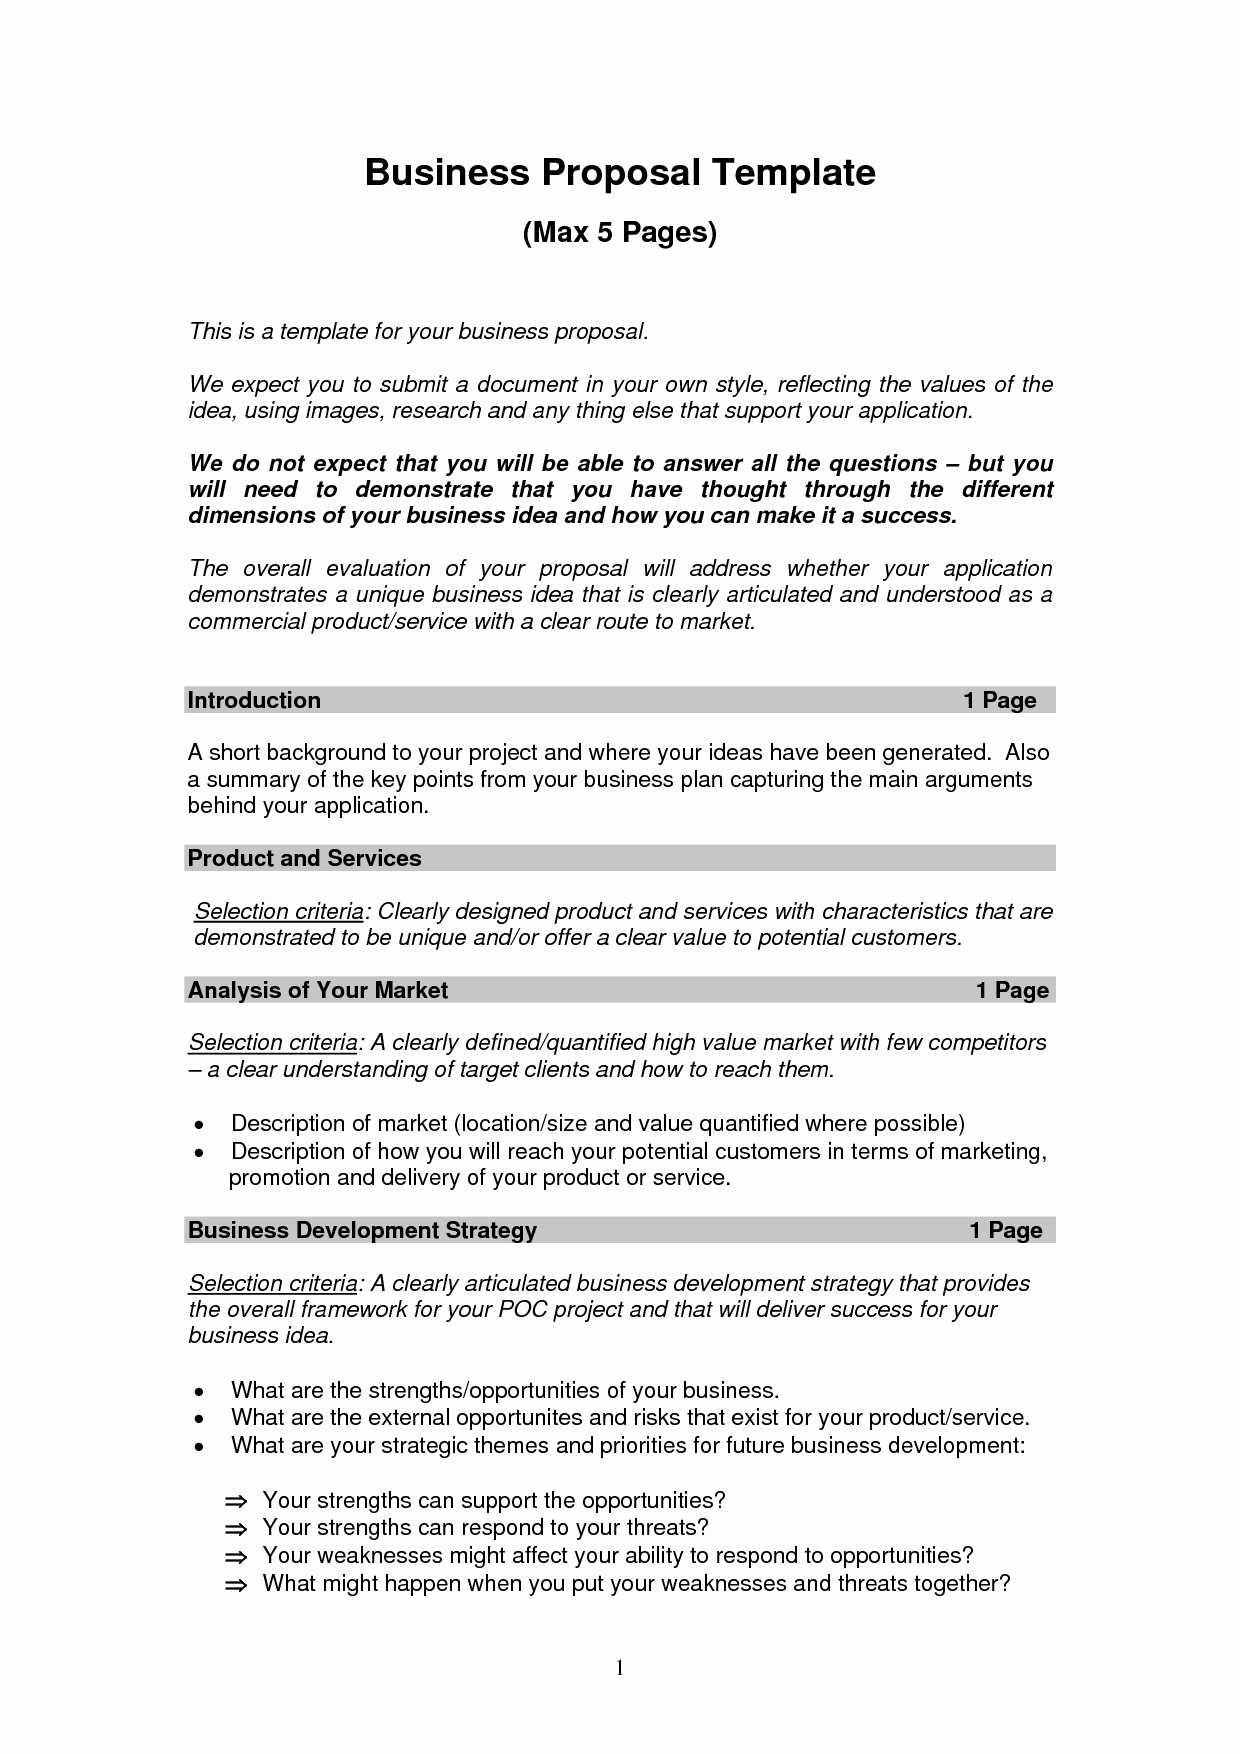 Business Proposal Template Pdf Awesome Business Proposal Templates Examples